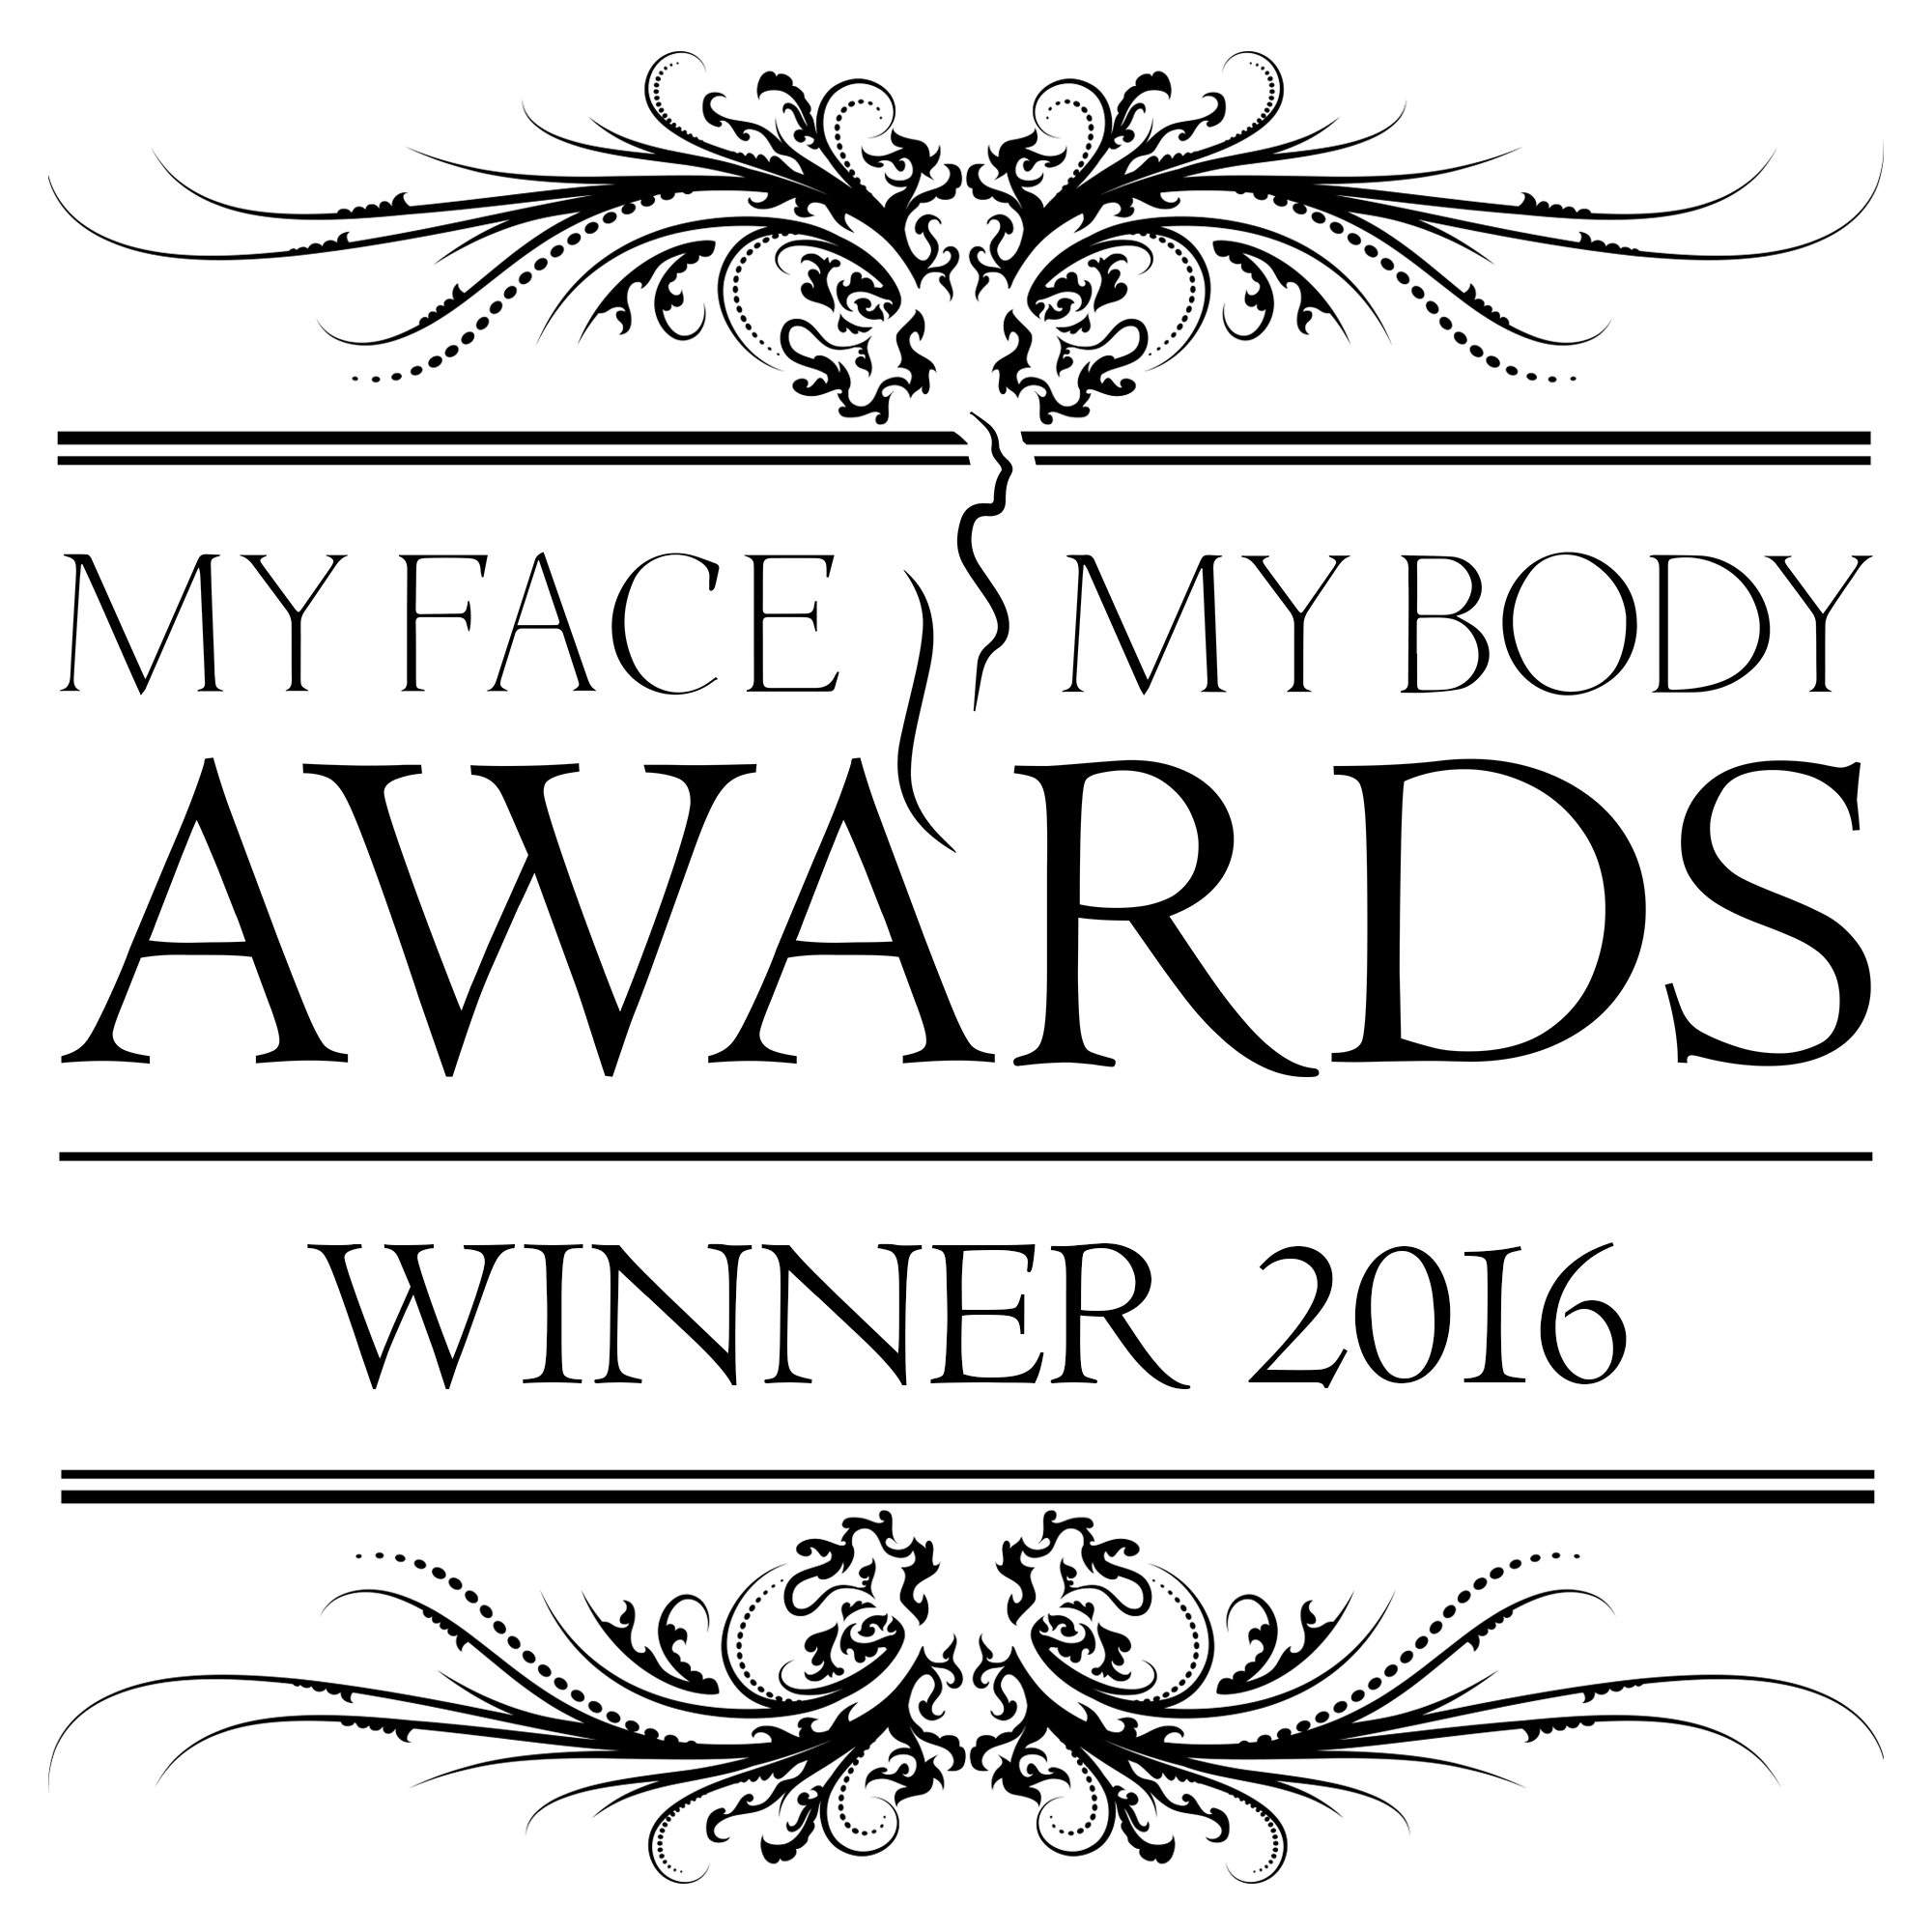 My Face My Body Awards Winter 2016